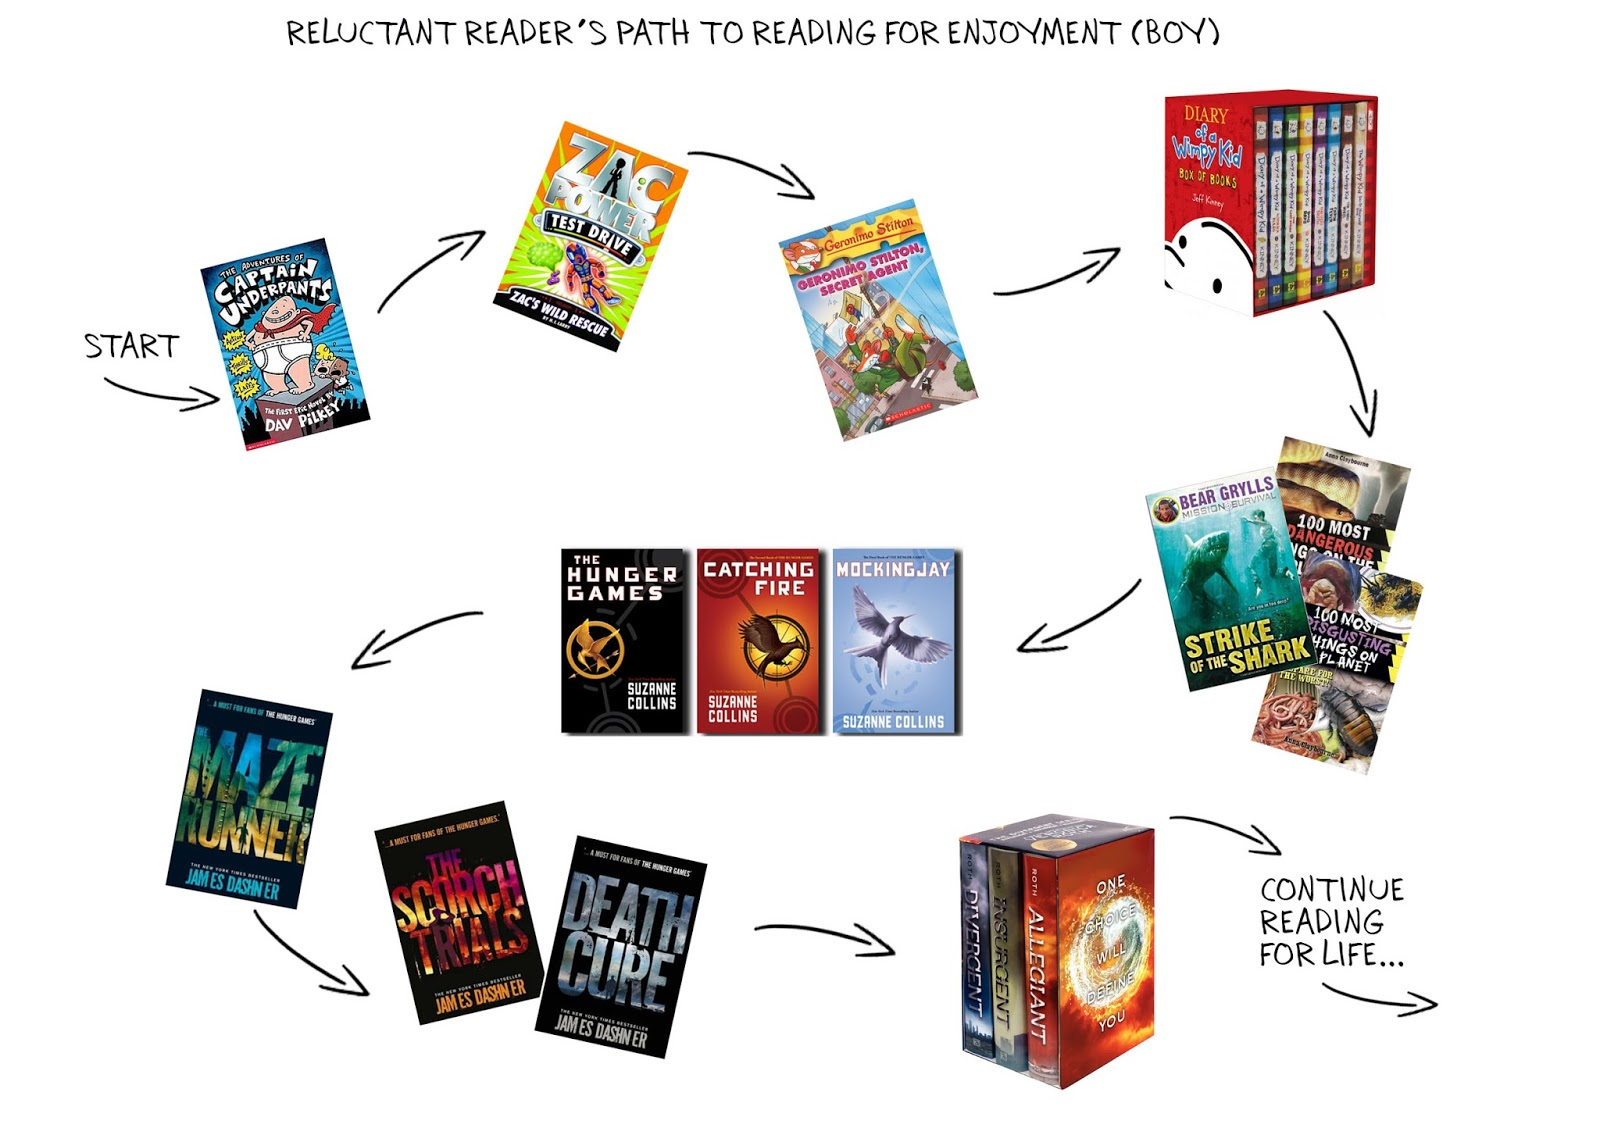 A reluctant reader's path to reading